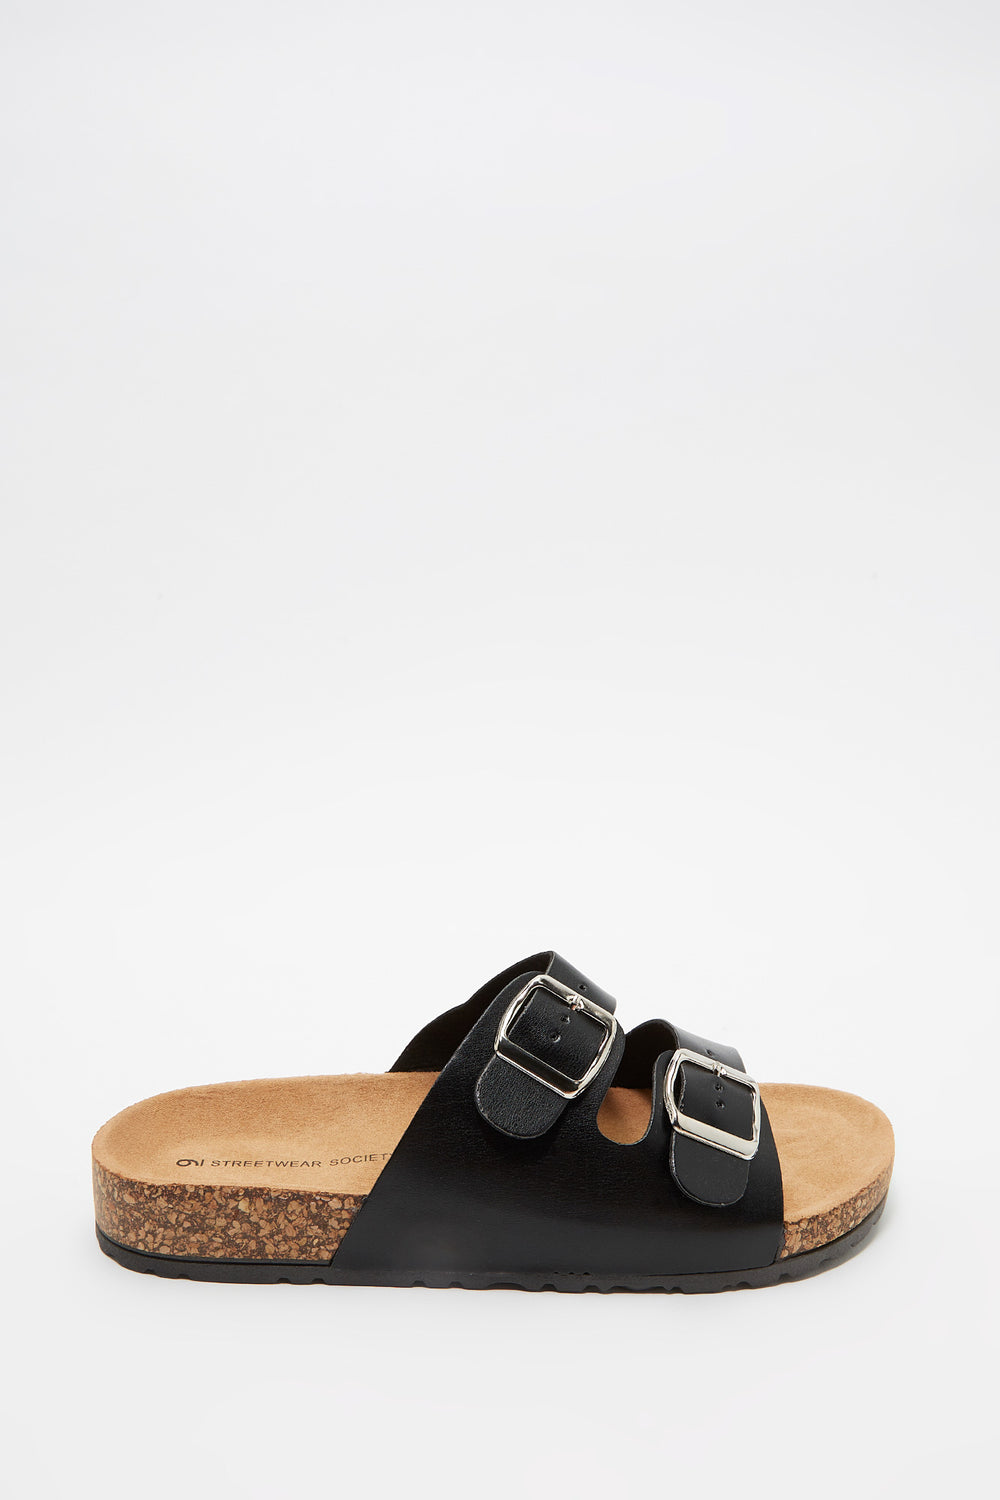 Dual Buckle Strap Cork Slide Black